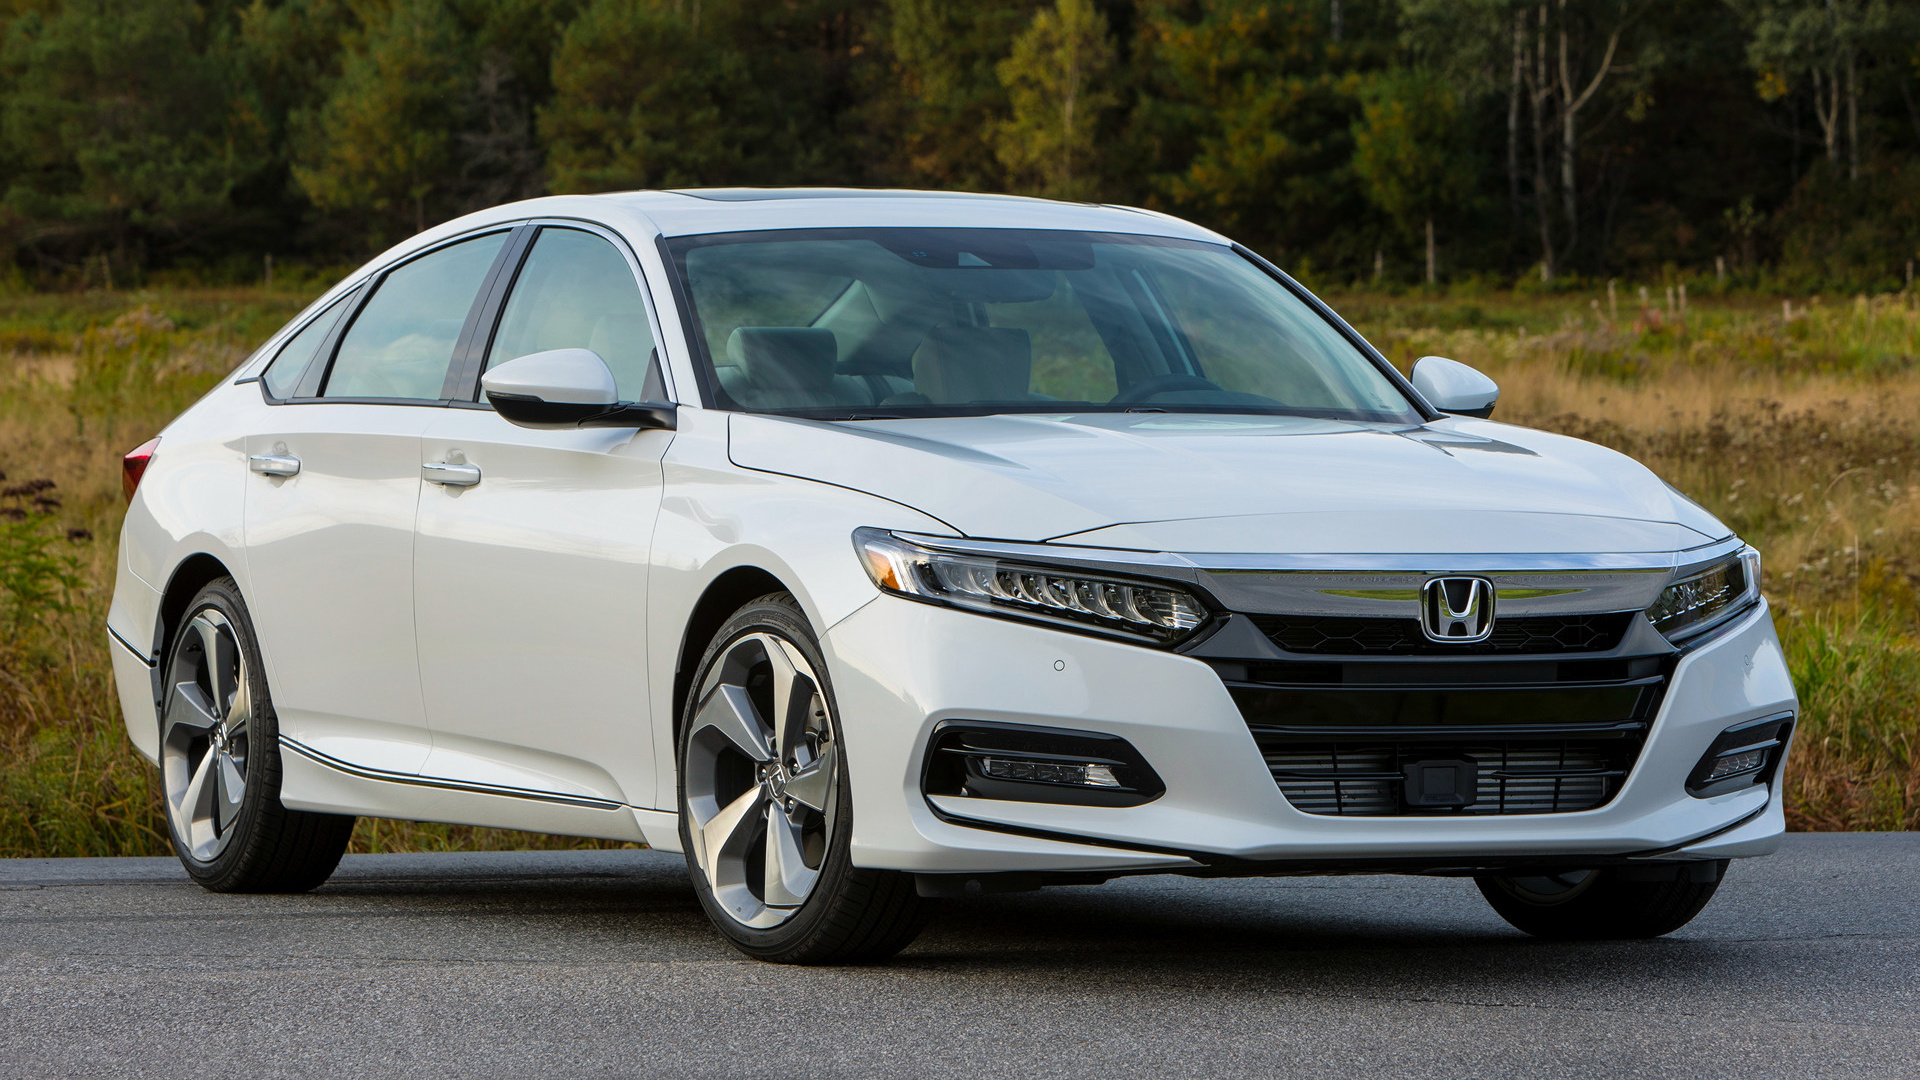 2018 honda accord touring wallpapers and hd images car. Black Bedroom Furniture Sets. Home Design Ideas